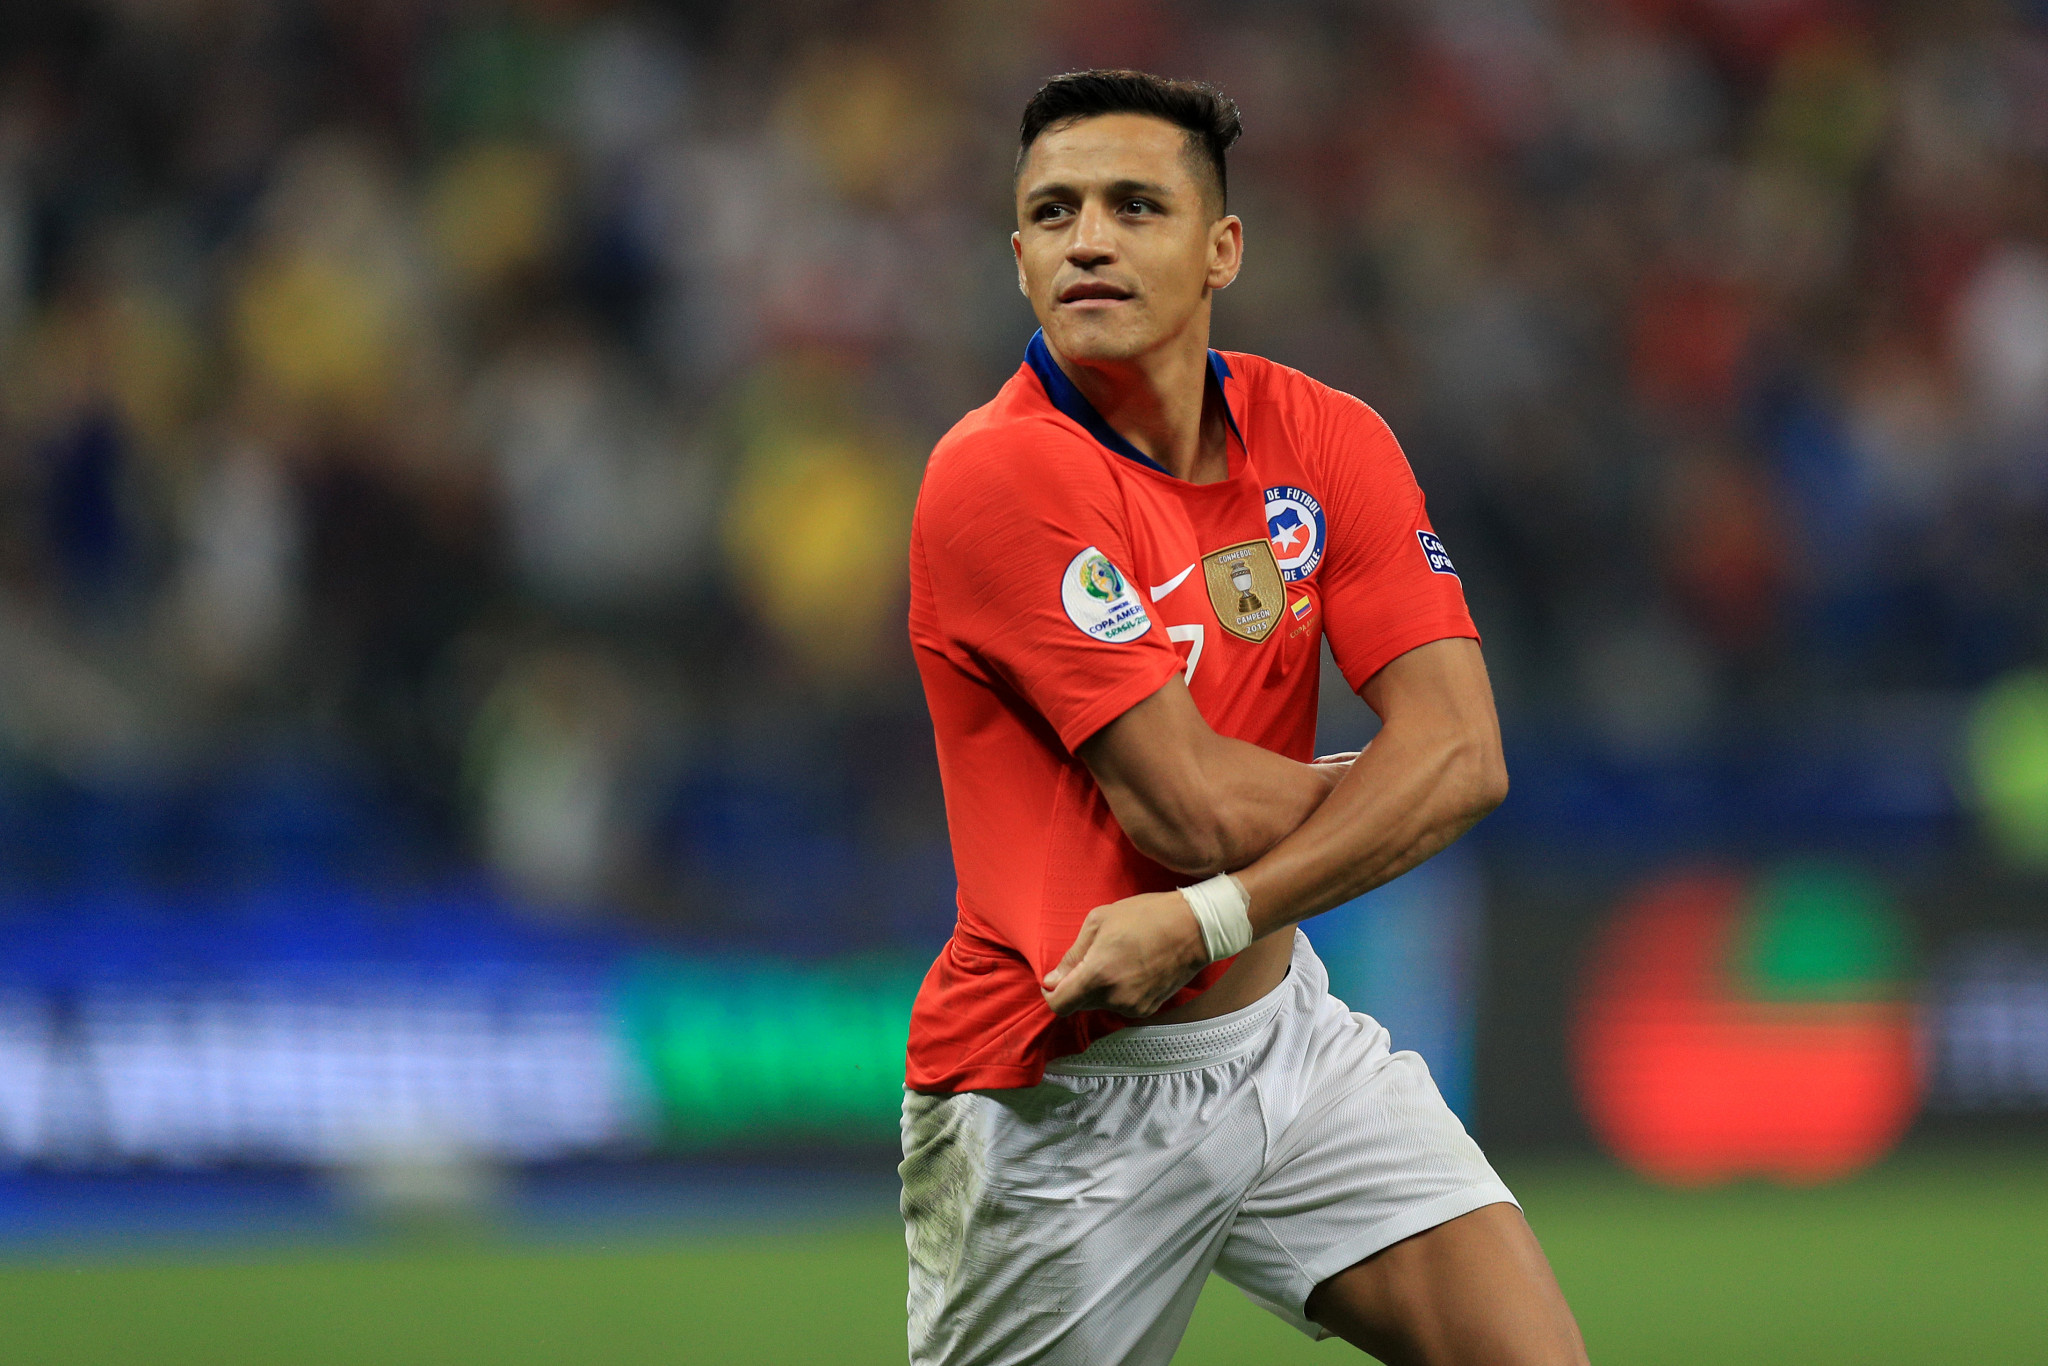 Alexis Sánchez scored the decisive penalty as Chile remained on course for a third successive Copa América title ©Getty Images